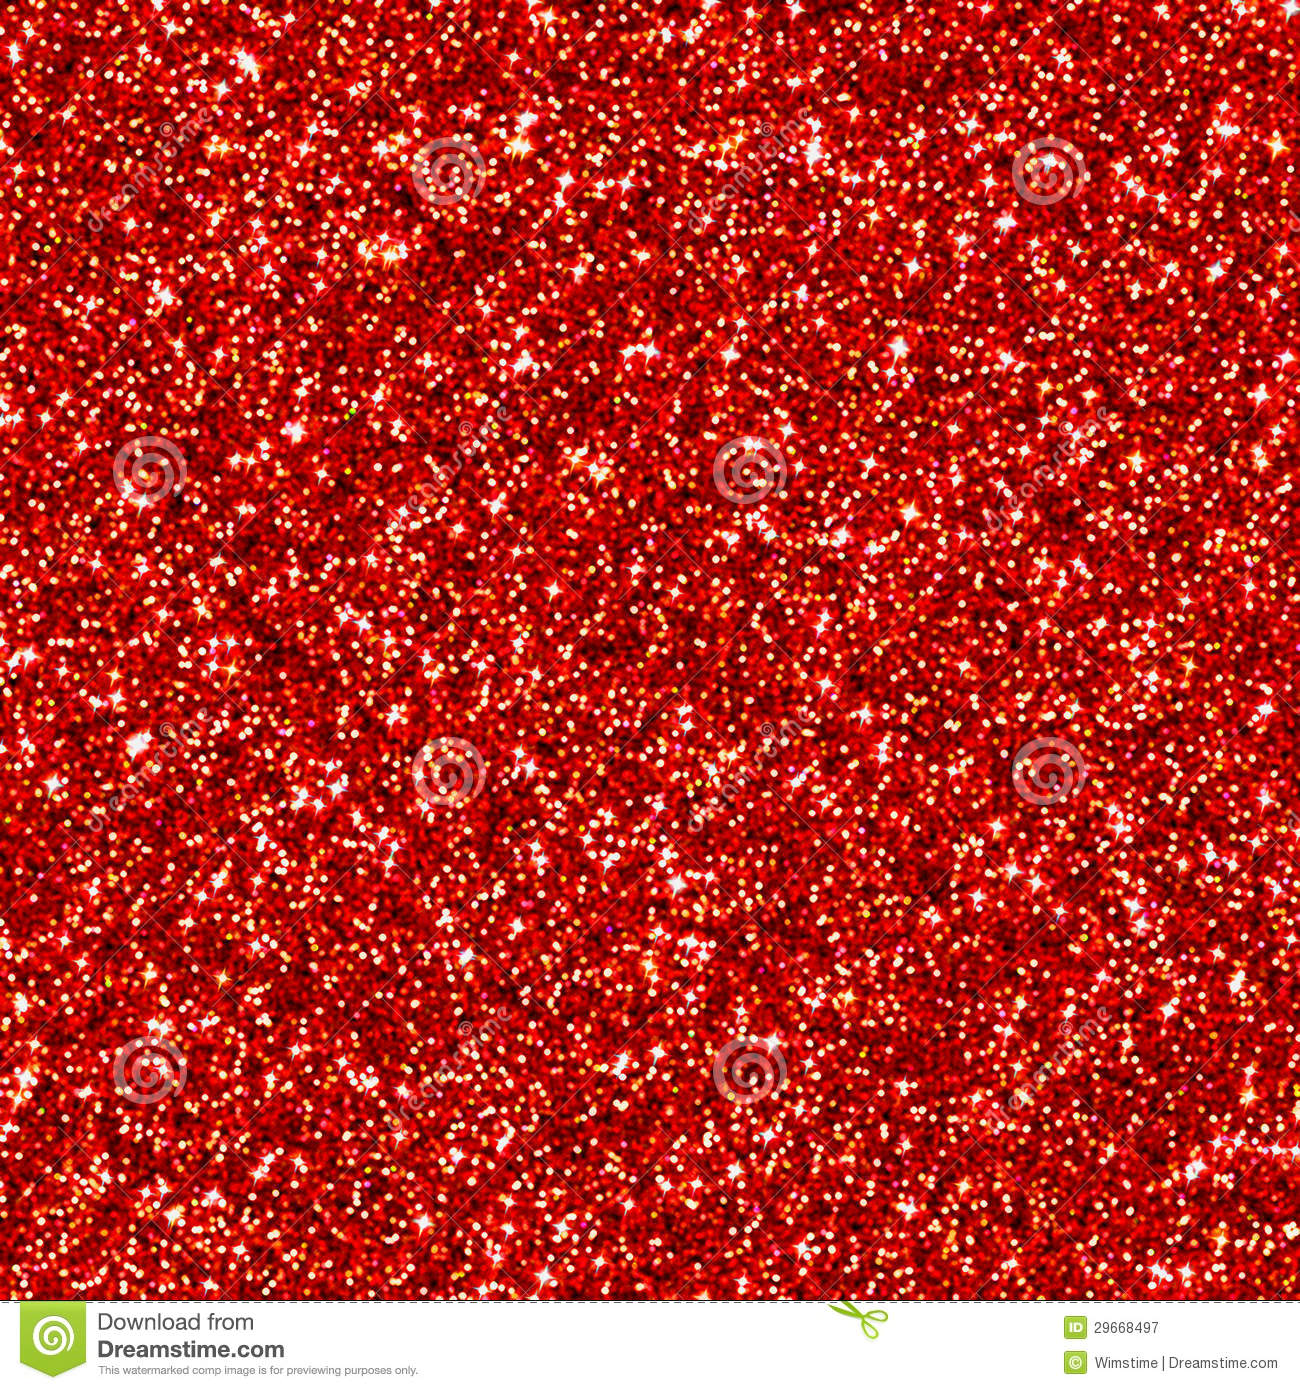 Red Glitter Royalty Free Stock Photography   Image  29668497